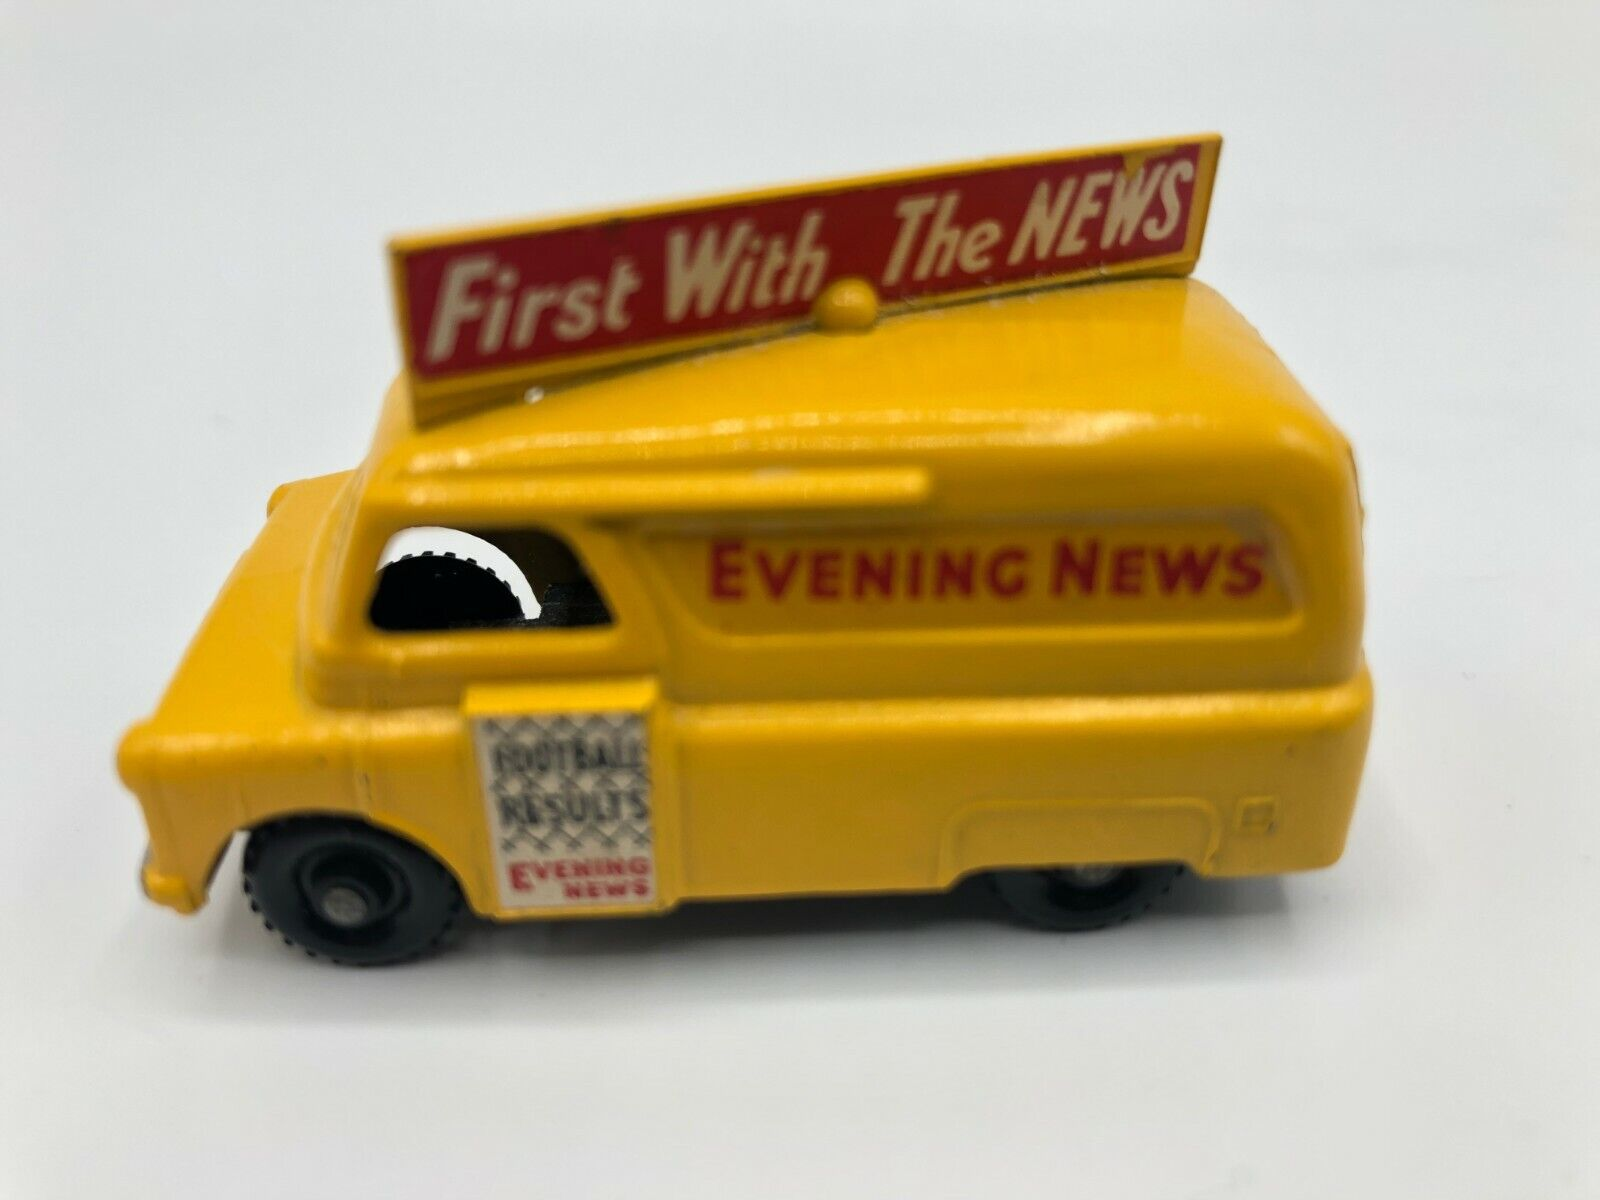 Everything News Yellow Van By Lesney (Made In England) Excellent Used Condition